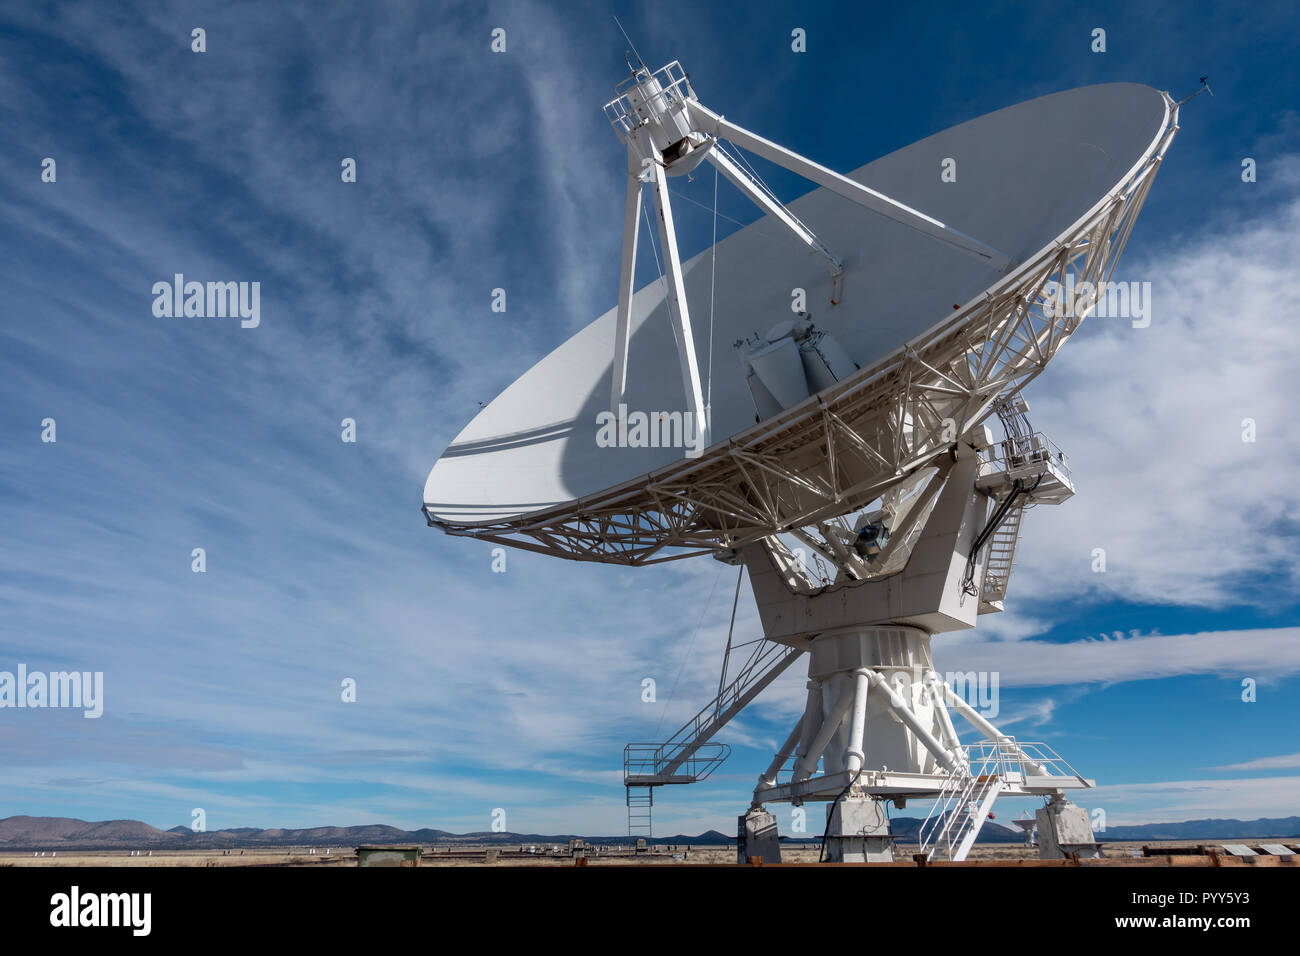 Very Large Array (VLA) Radio Telescopes in New Mexico, USA Stock Photo